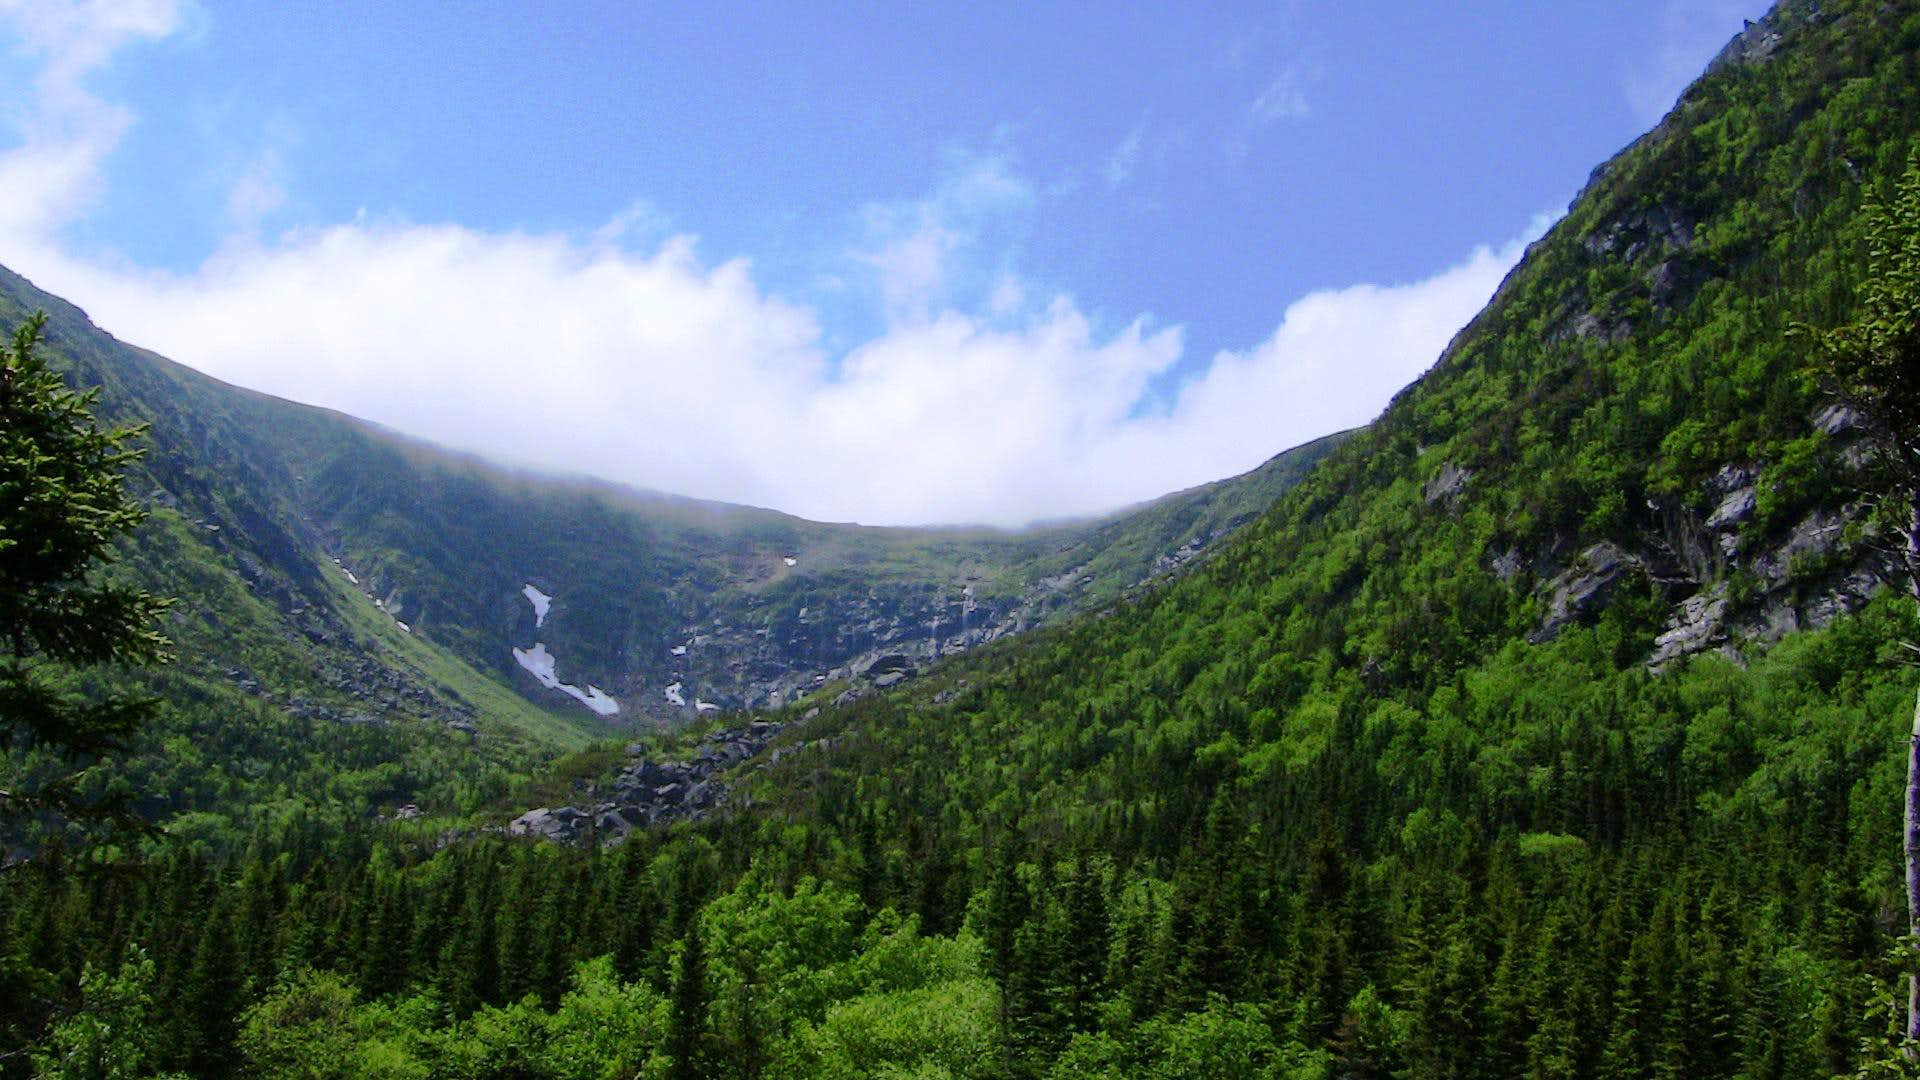 Tuckerman Ravine - June 2012